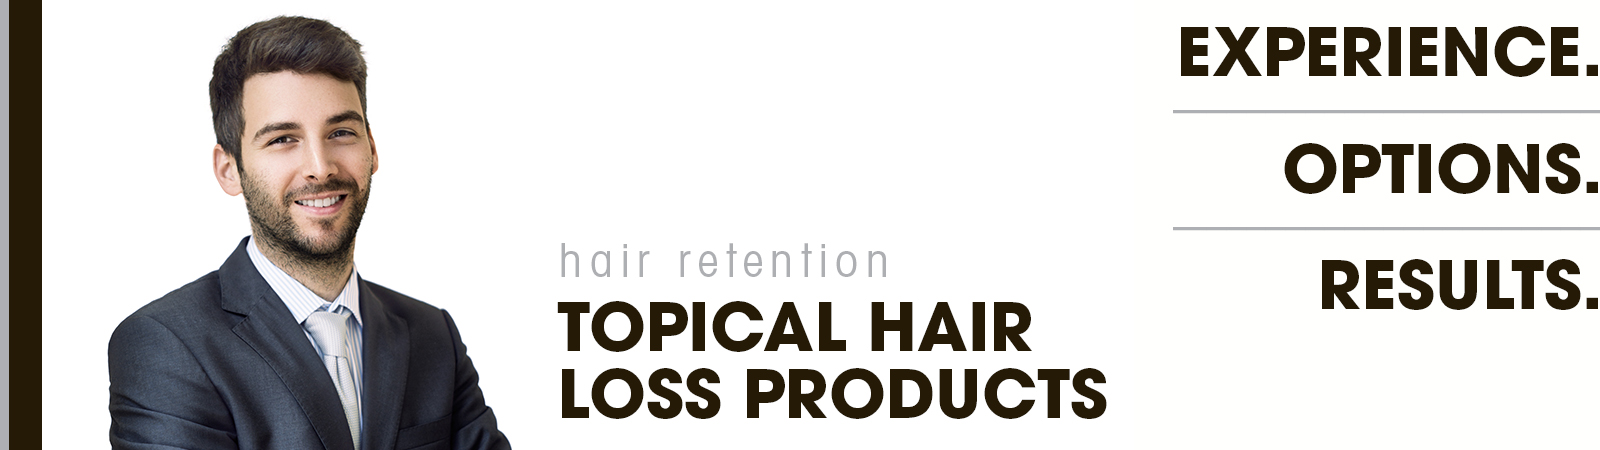 Topical Hair Loss Products Jmisko